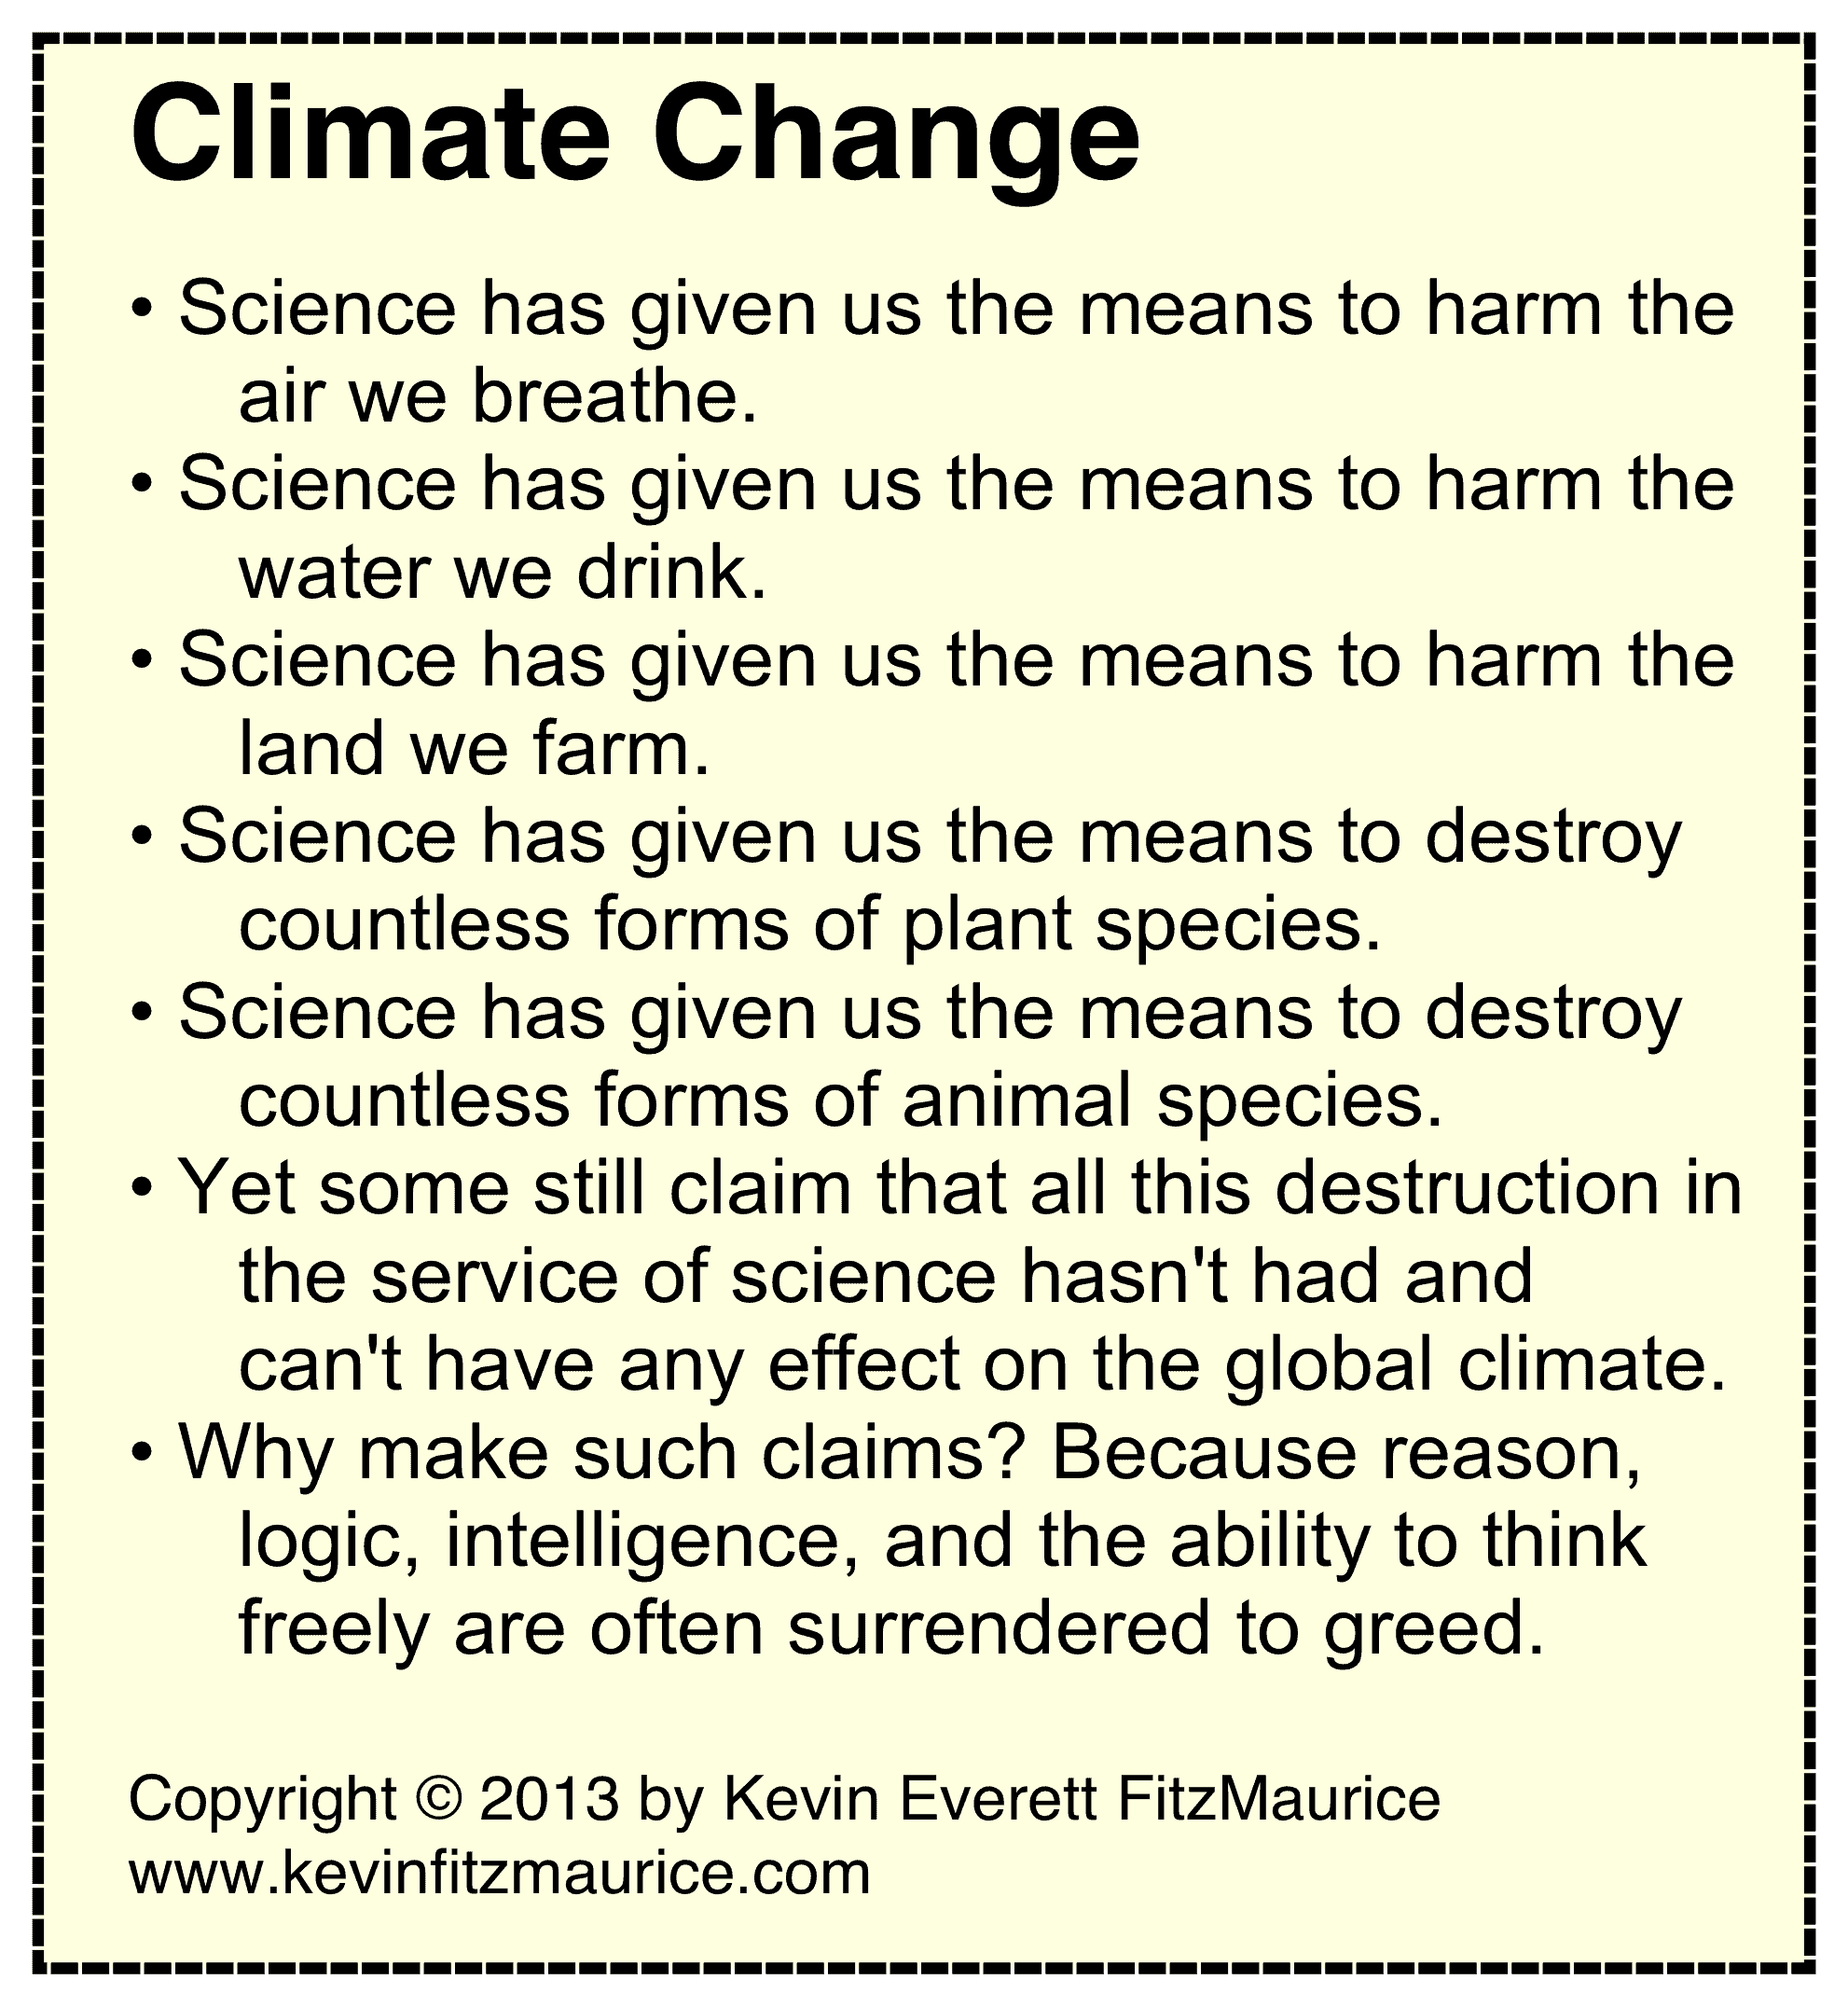 climate change and science